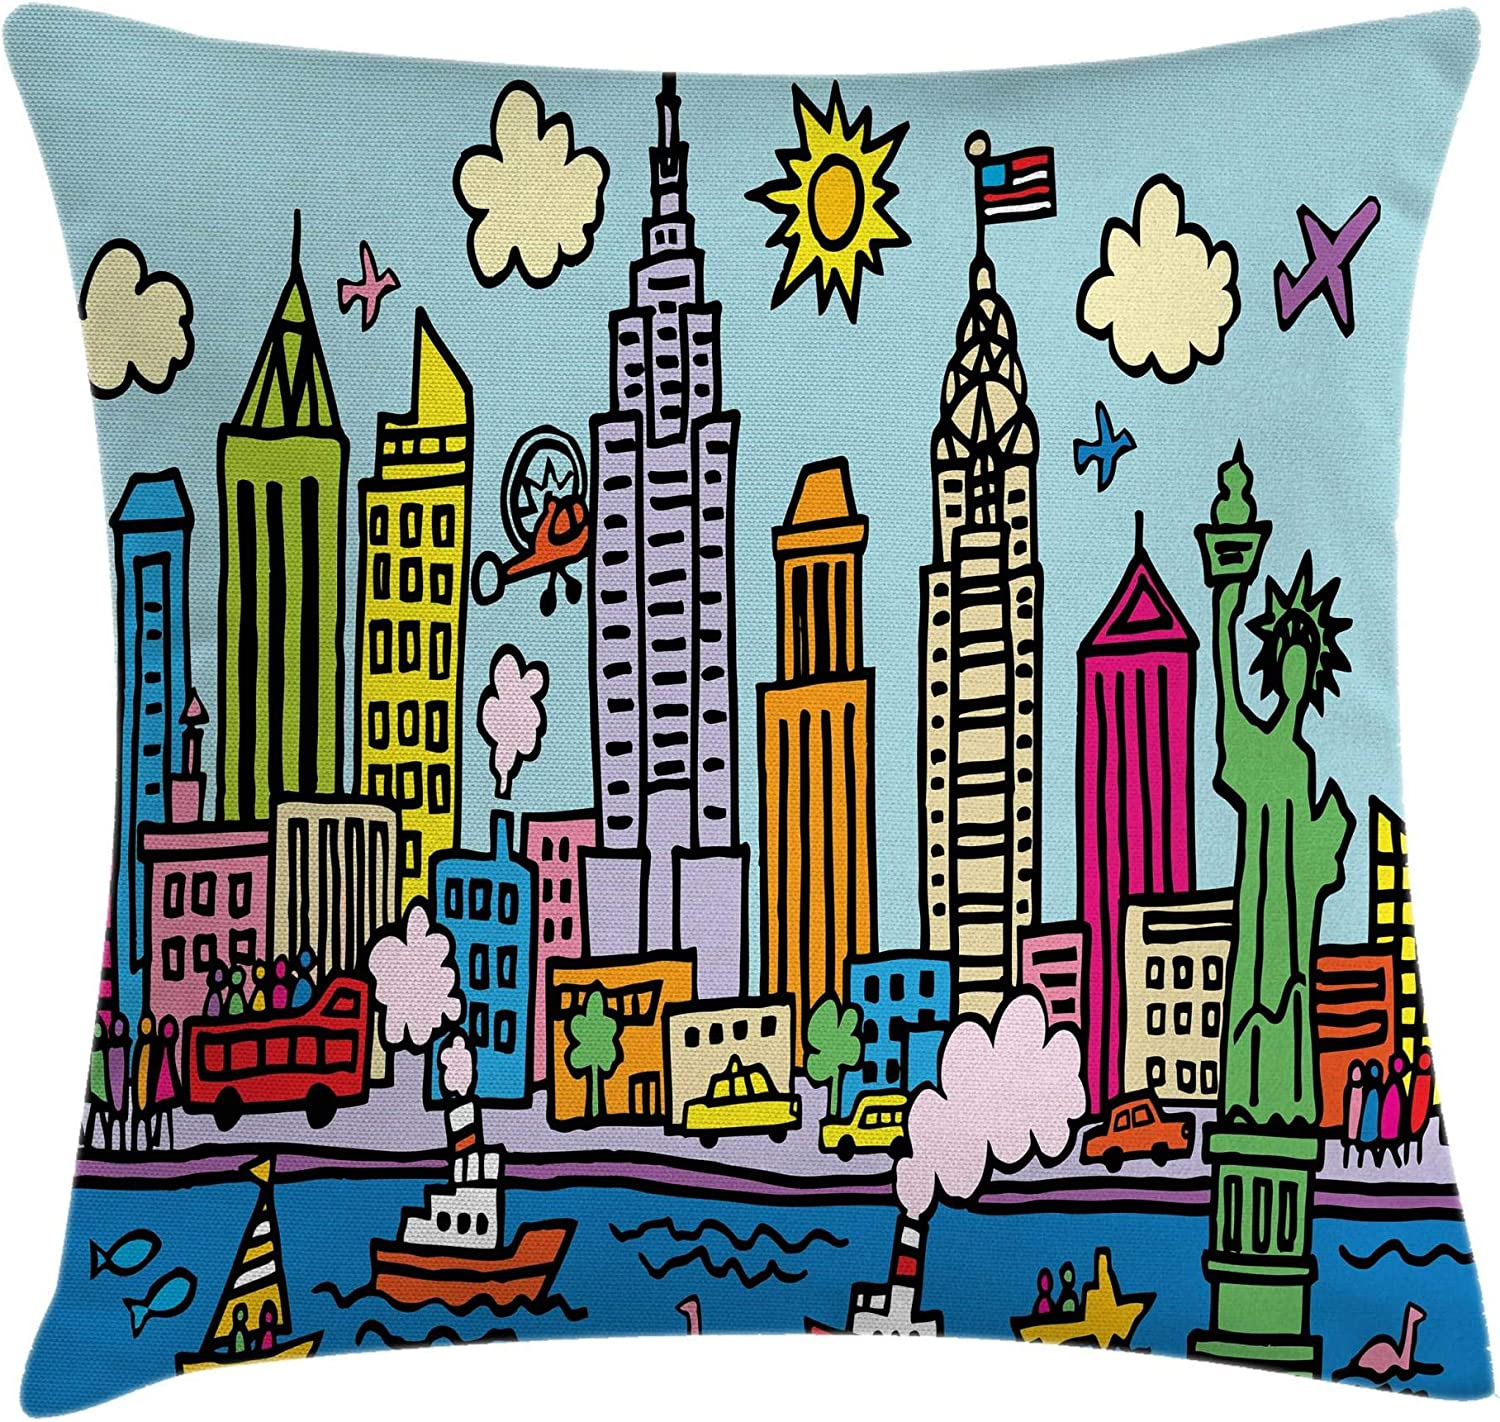 Amazon Com Ambesonne Playroom Throw Pillow Cushion Cover New York City In Cartoon Style Colorful Childlike Drawing Kids Room Nursery Print Decorative Square Accent Pillow Case 16 X 16 Pale Blue Home